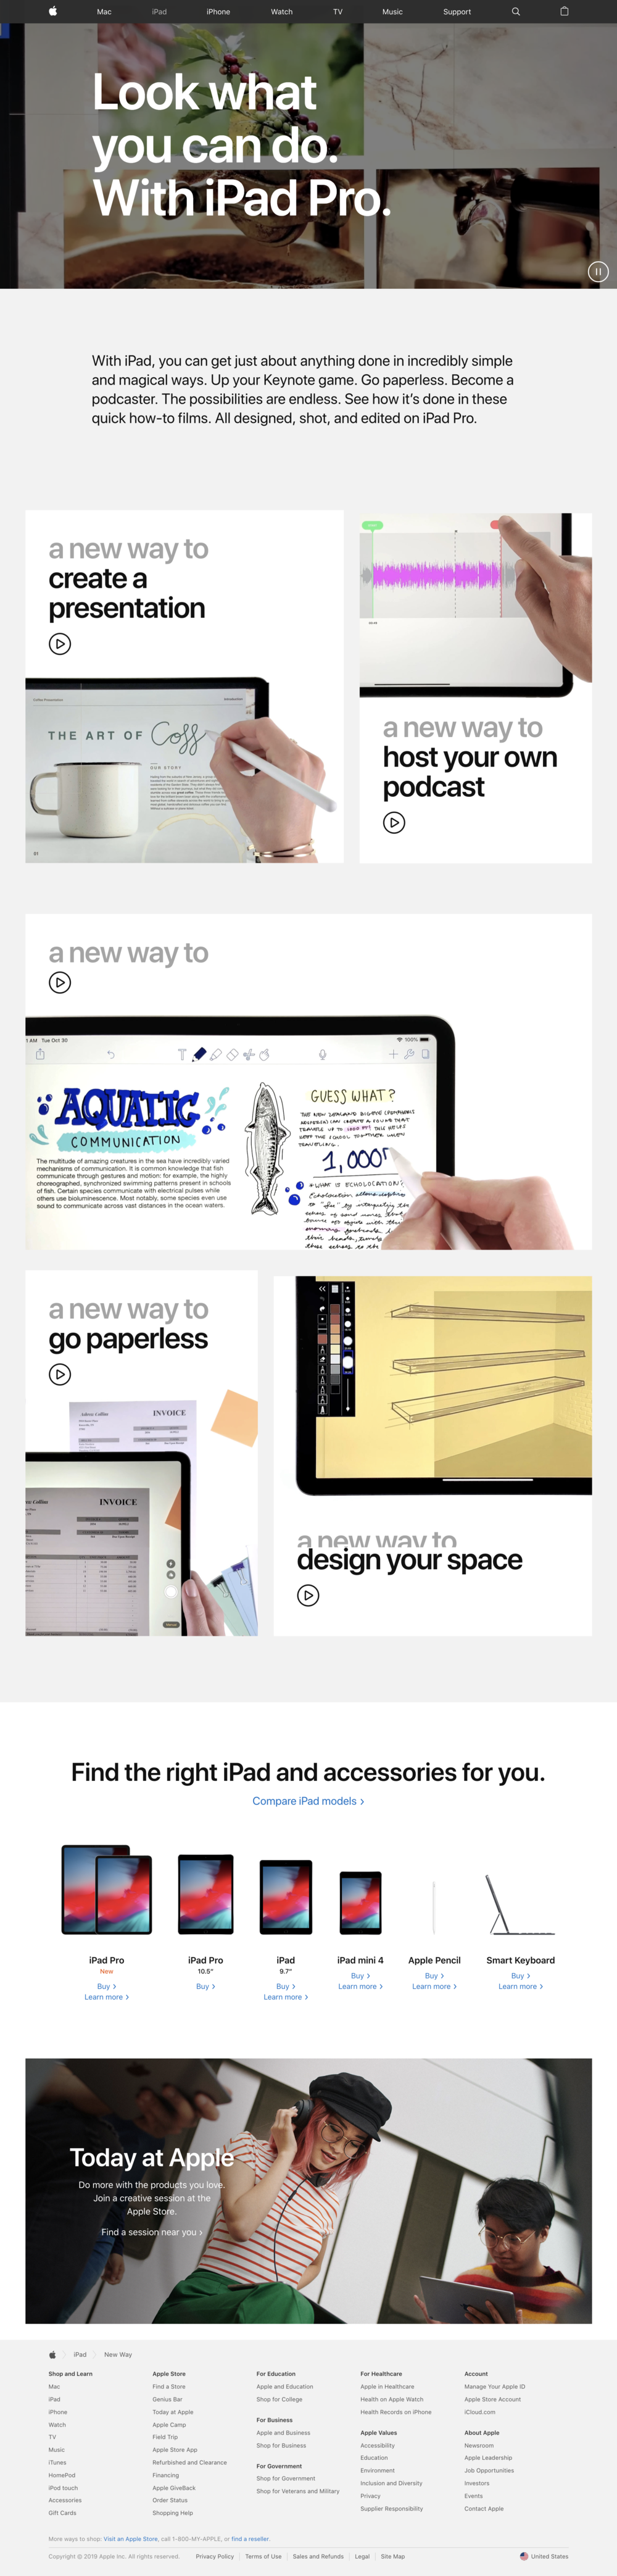 iPadProHowTo.png